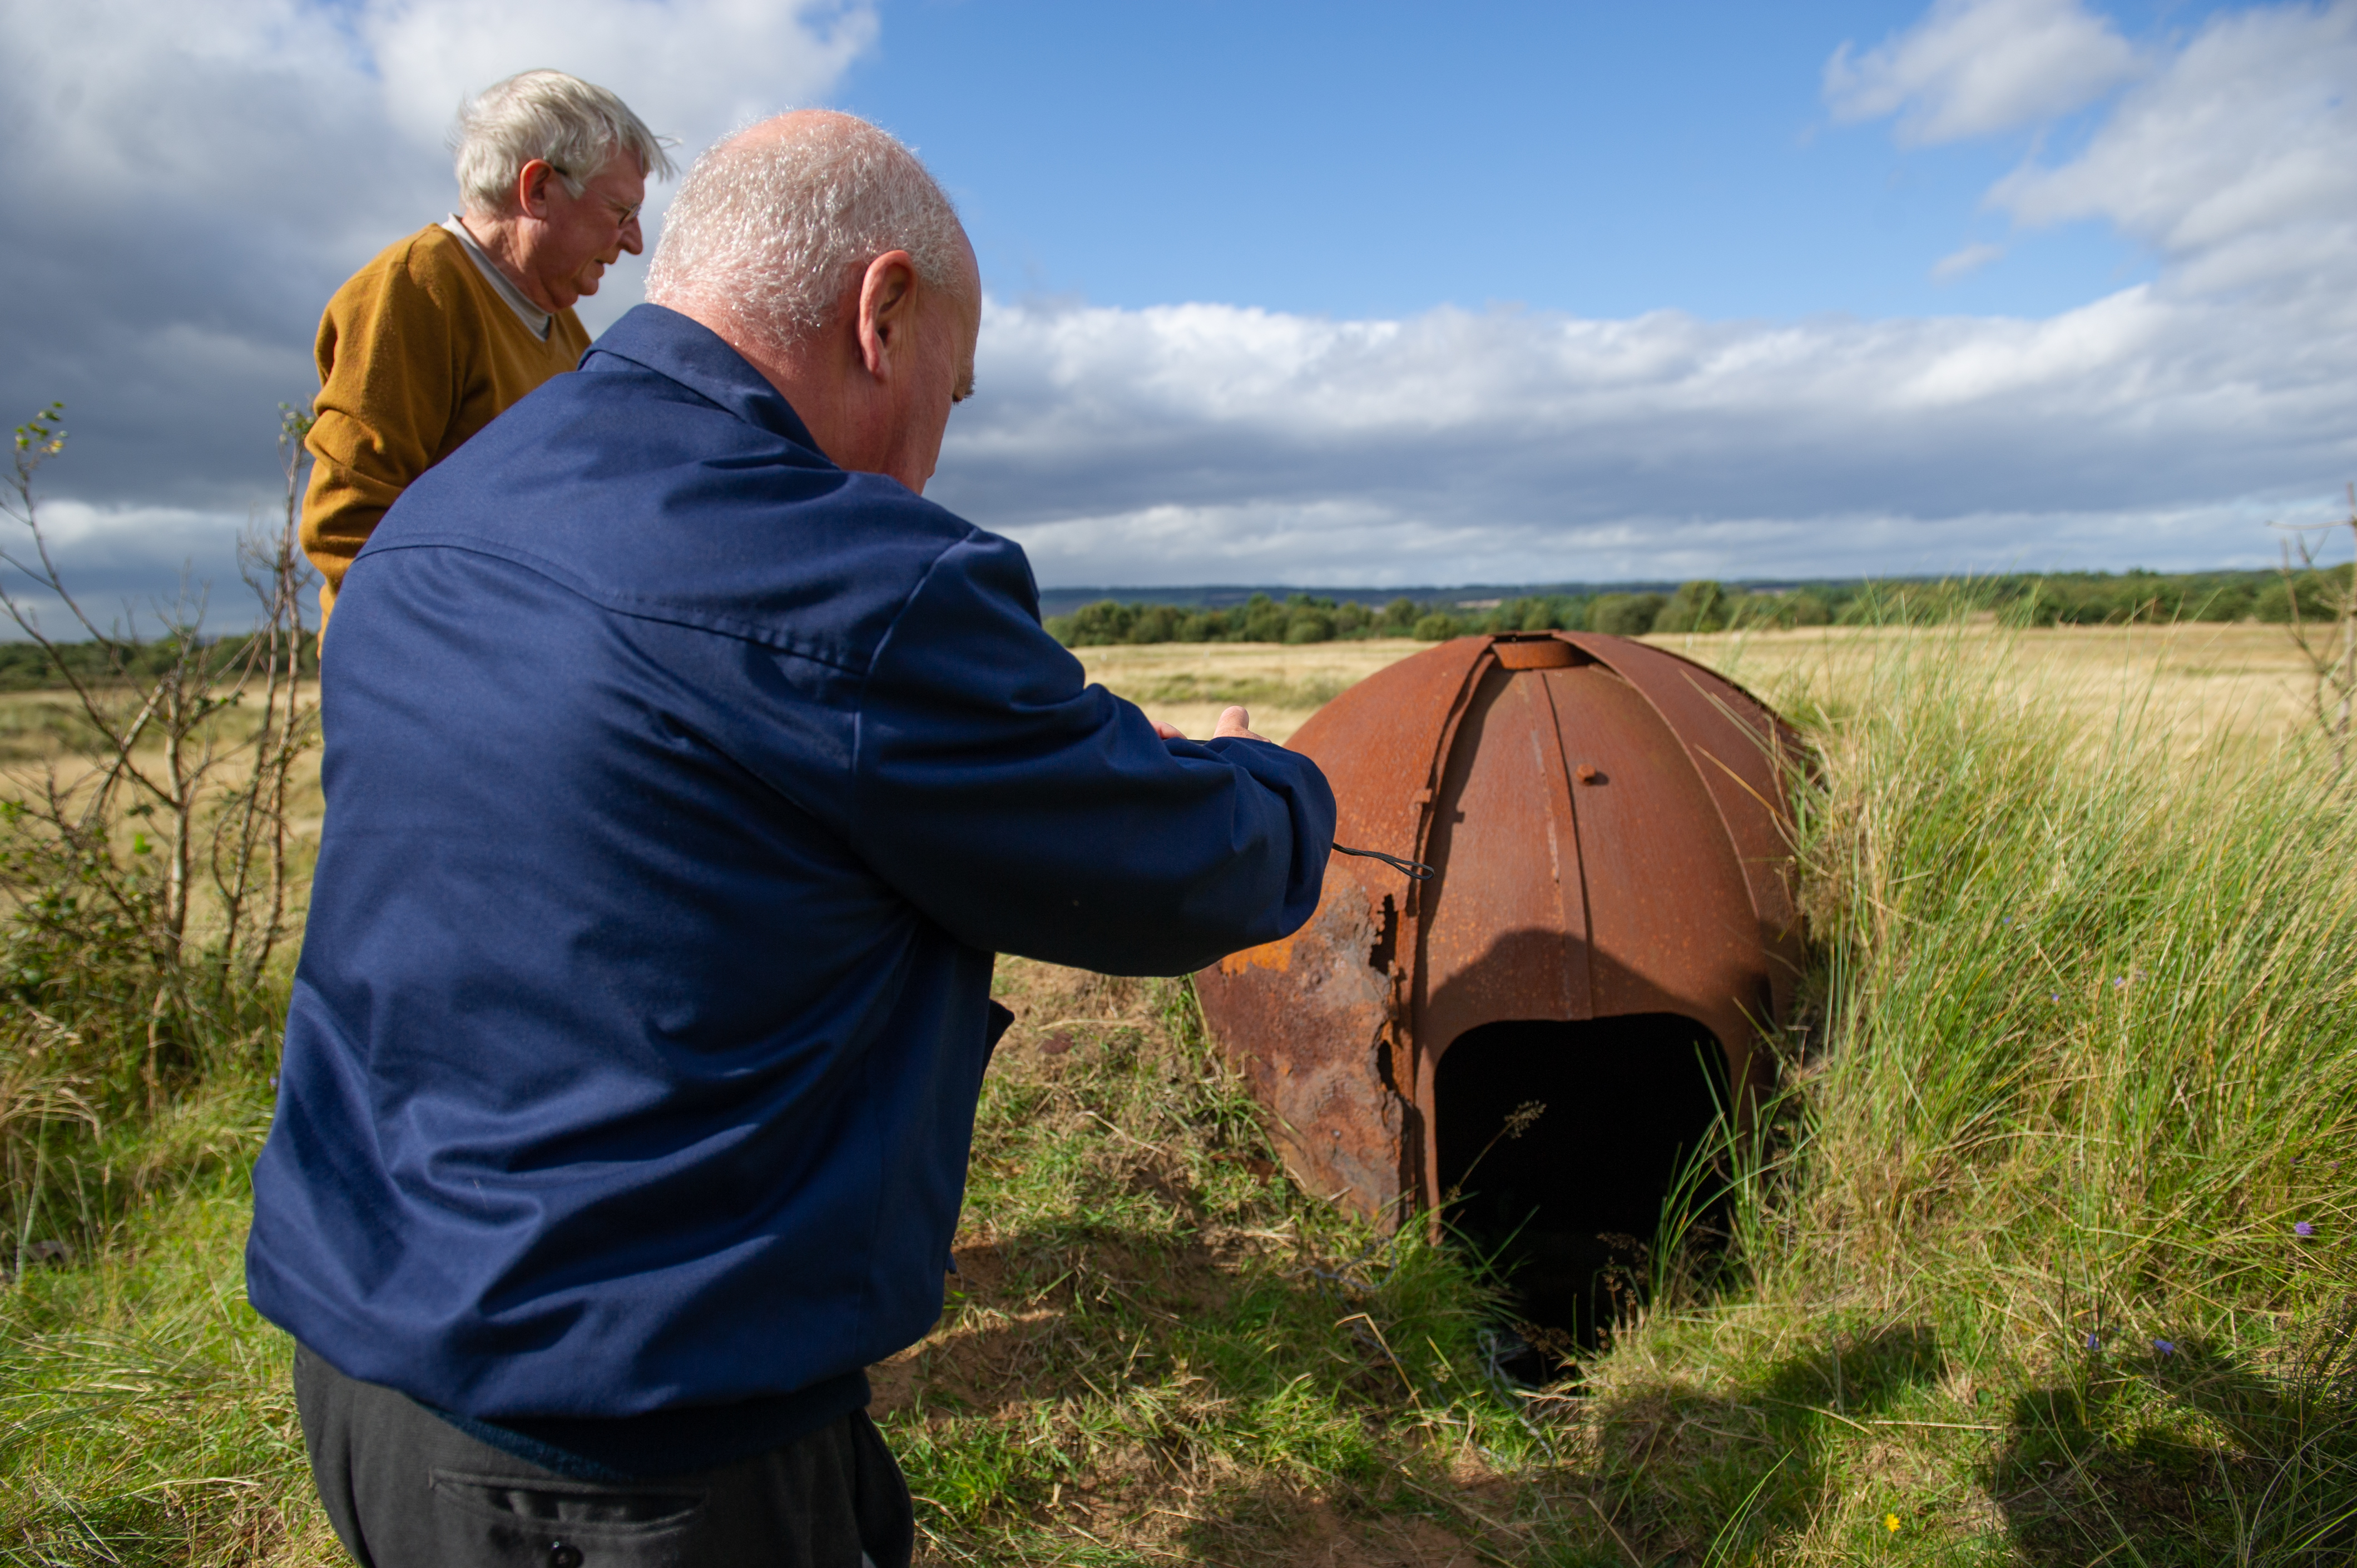 Carnoustie Legion members examine the turret that has also been unearthed.